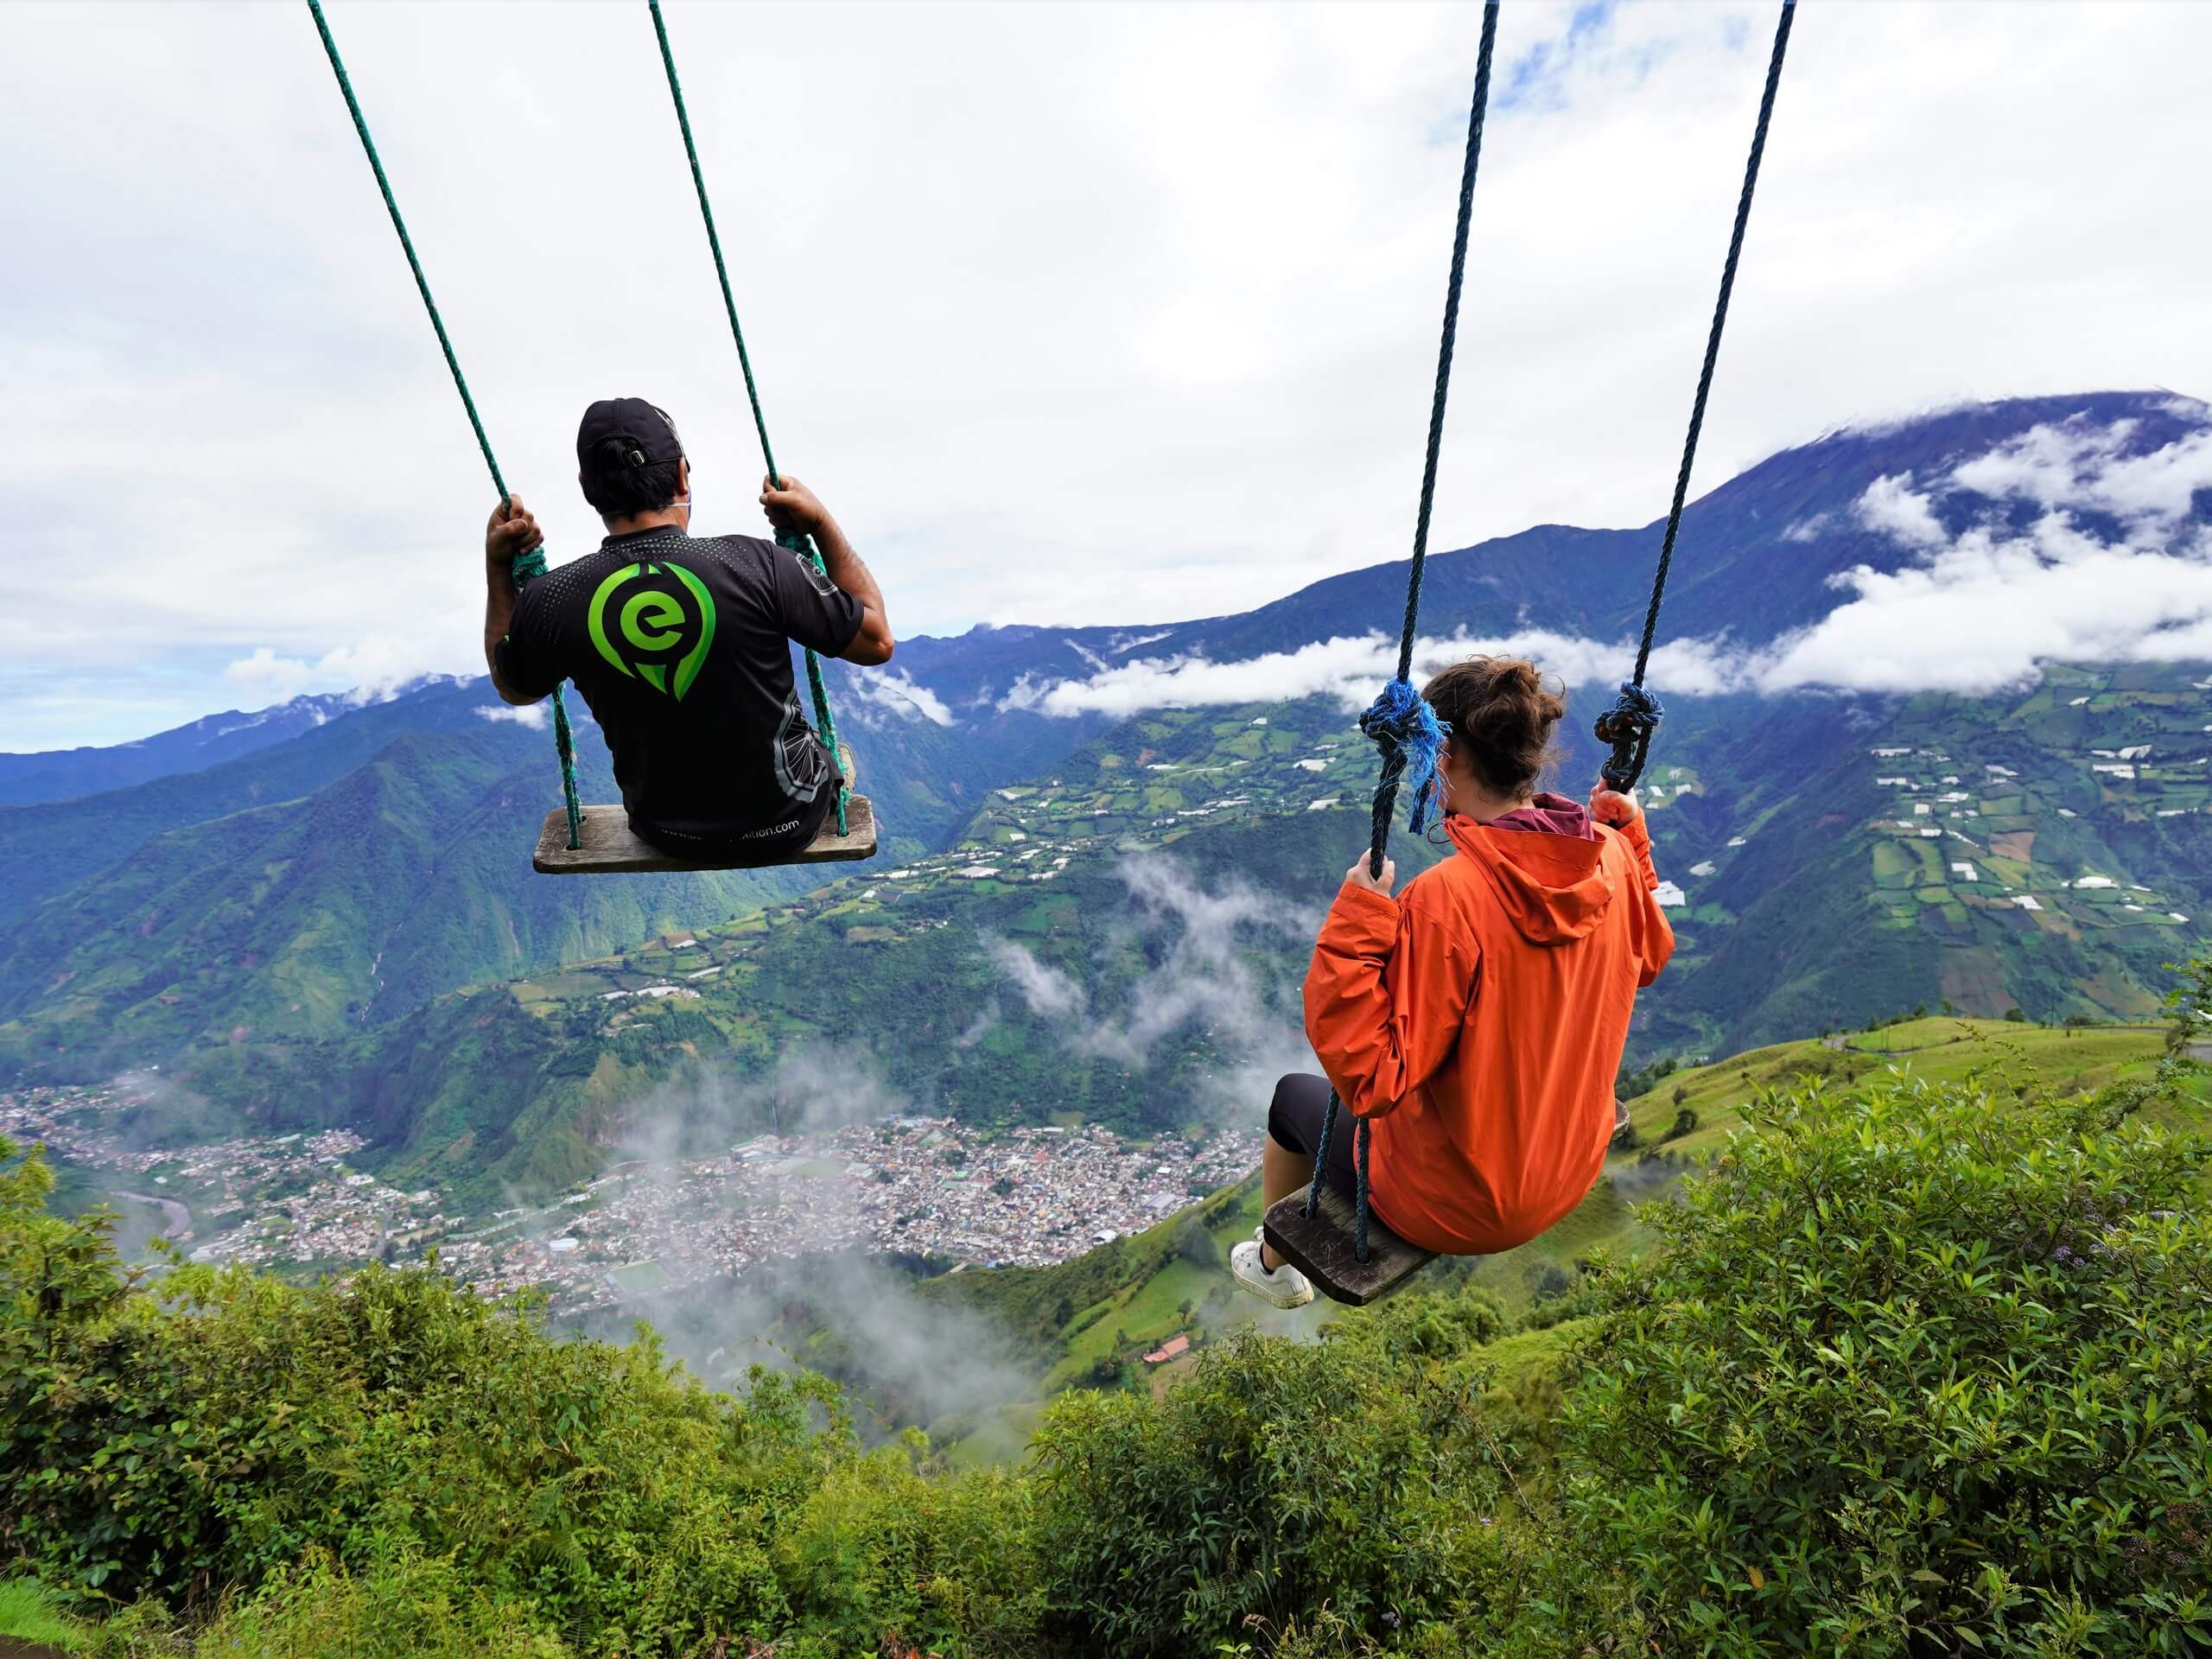 Swinging above the town of Banos in Ecuador